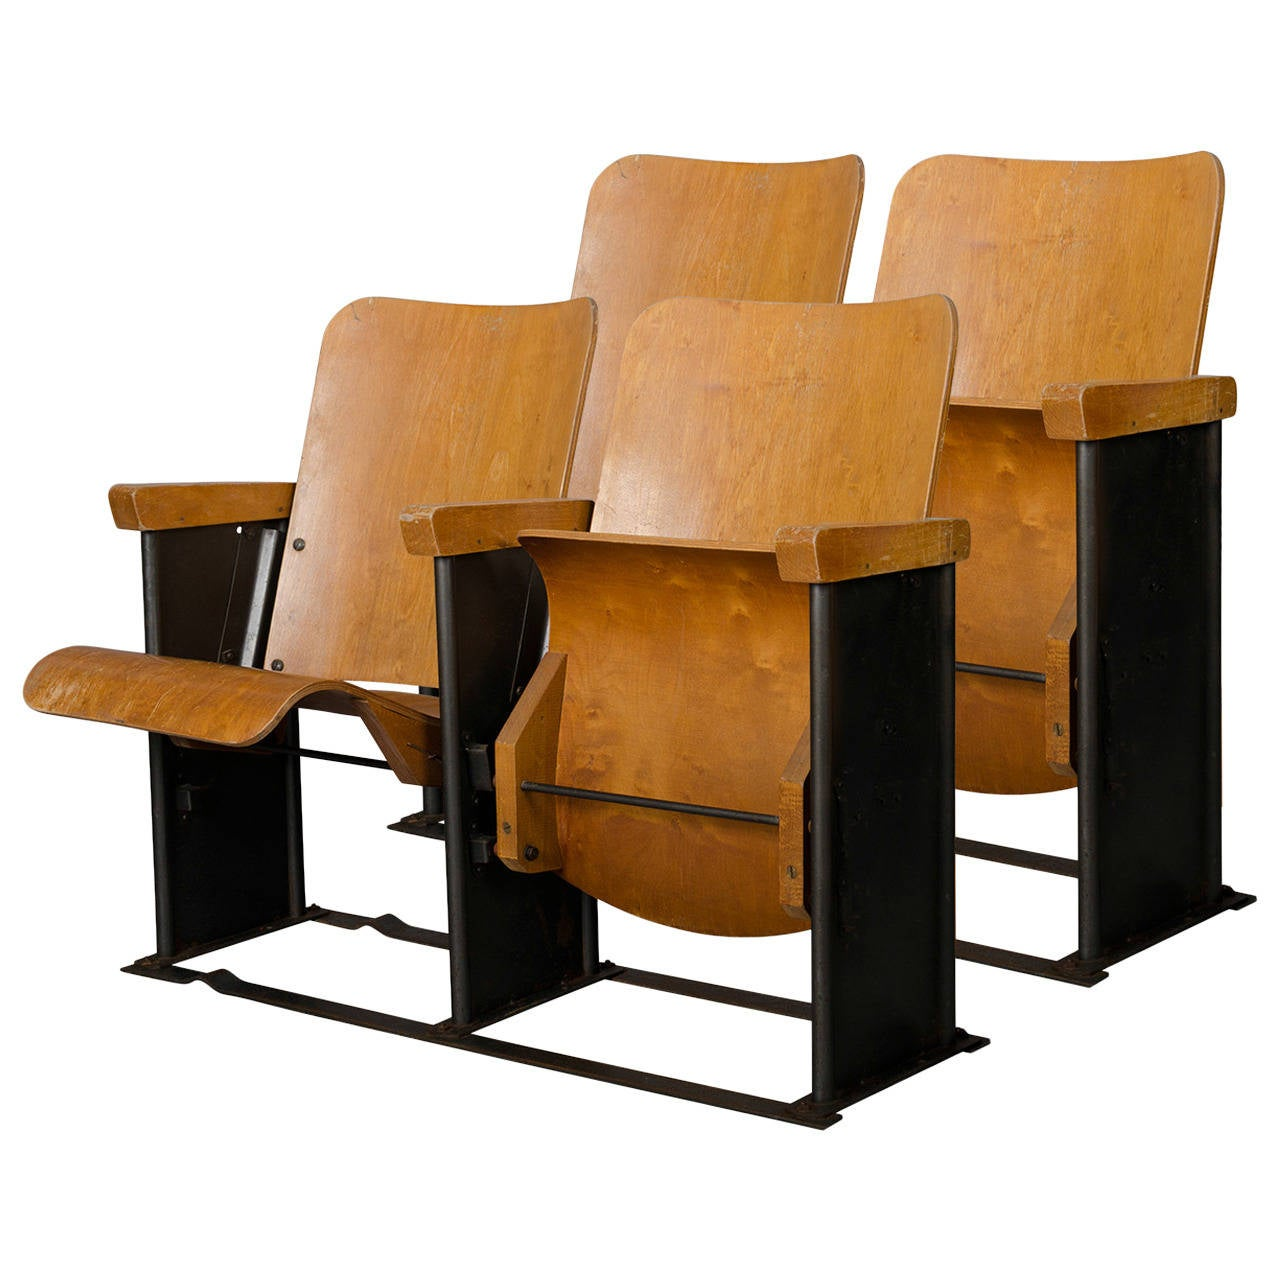 movie chairs for sale chair design theory 1950s theater armchairs from a military base at 1stdibs